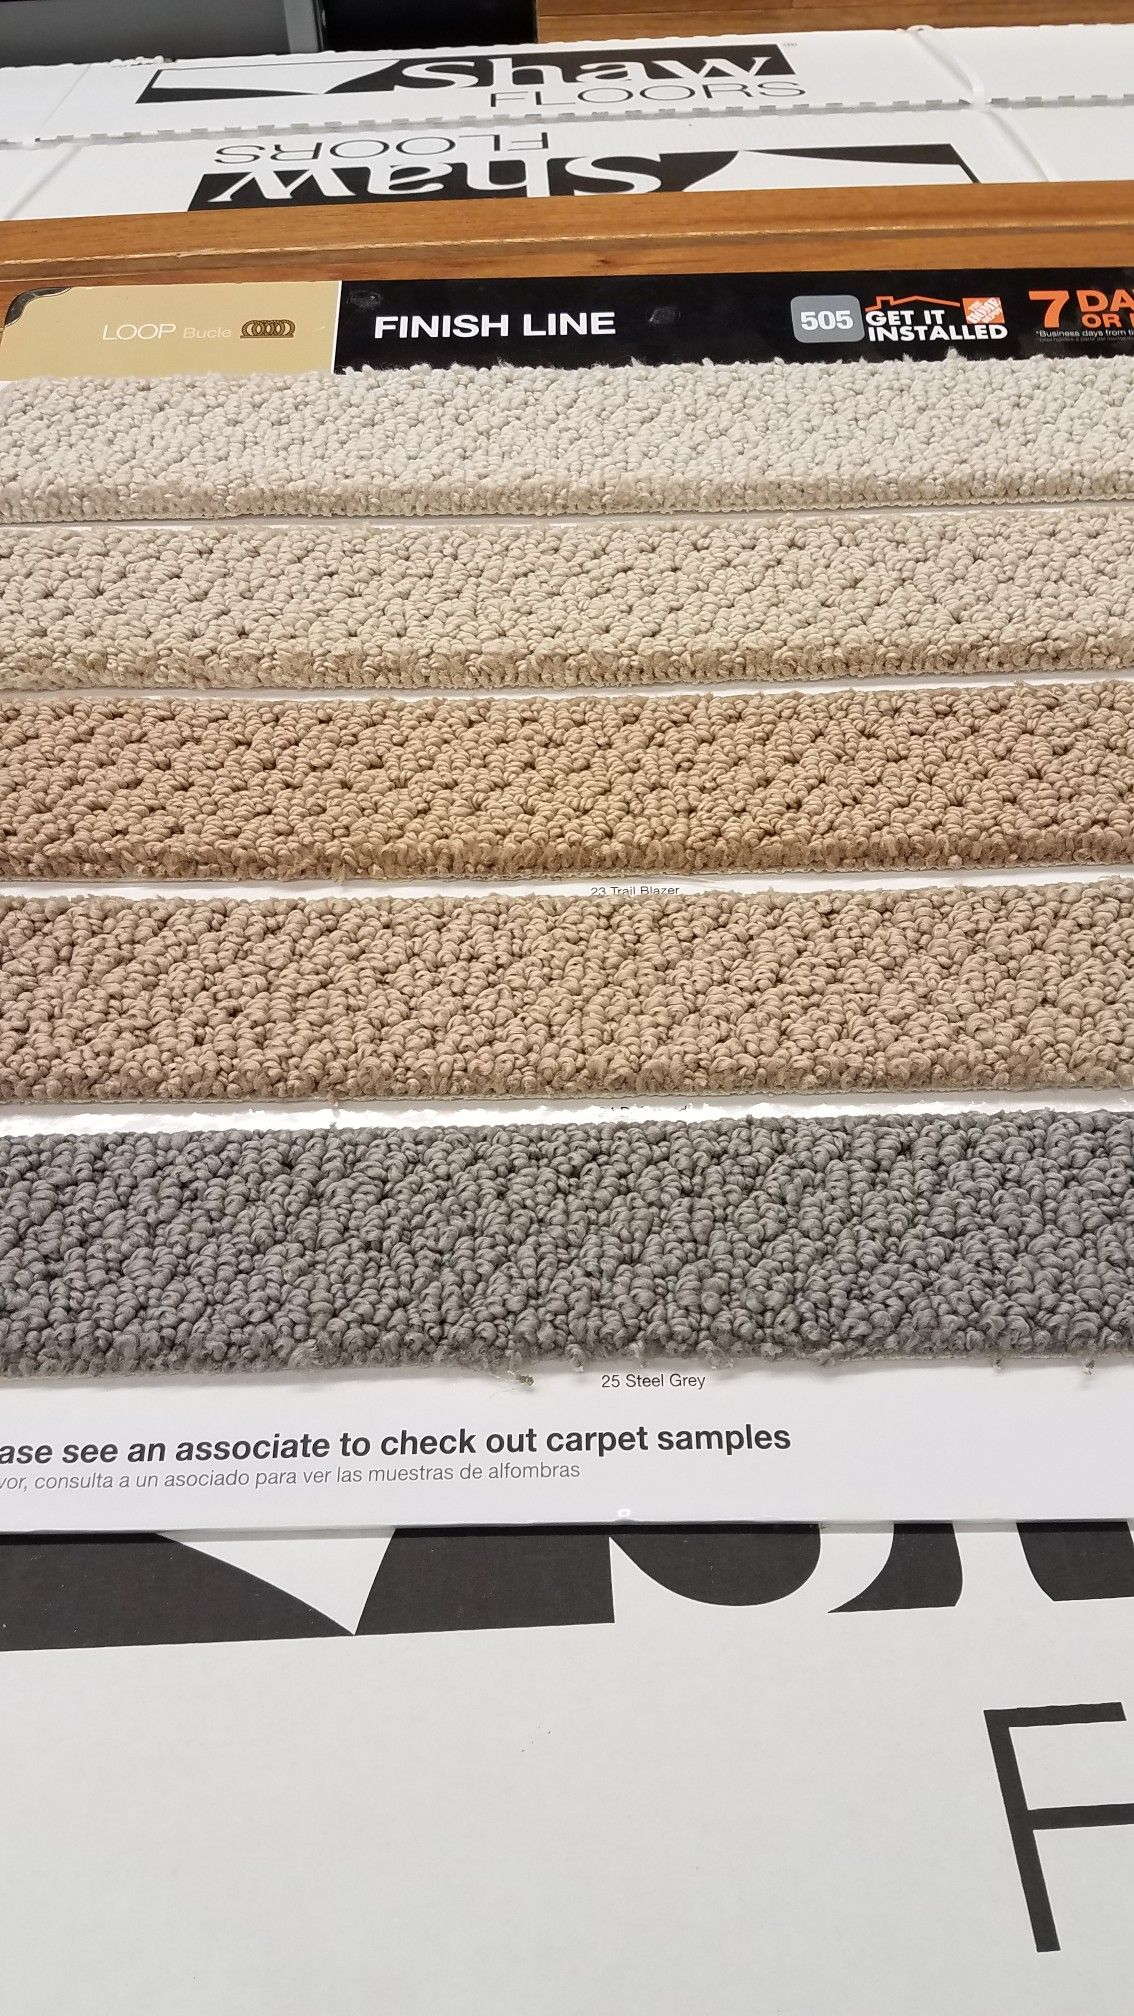 Pin by Sarah Wheeler on My new home Carpet samples